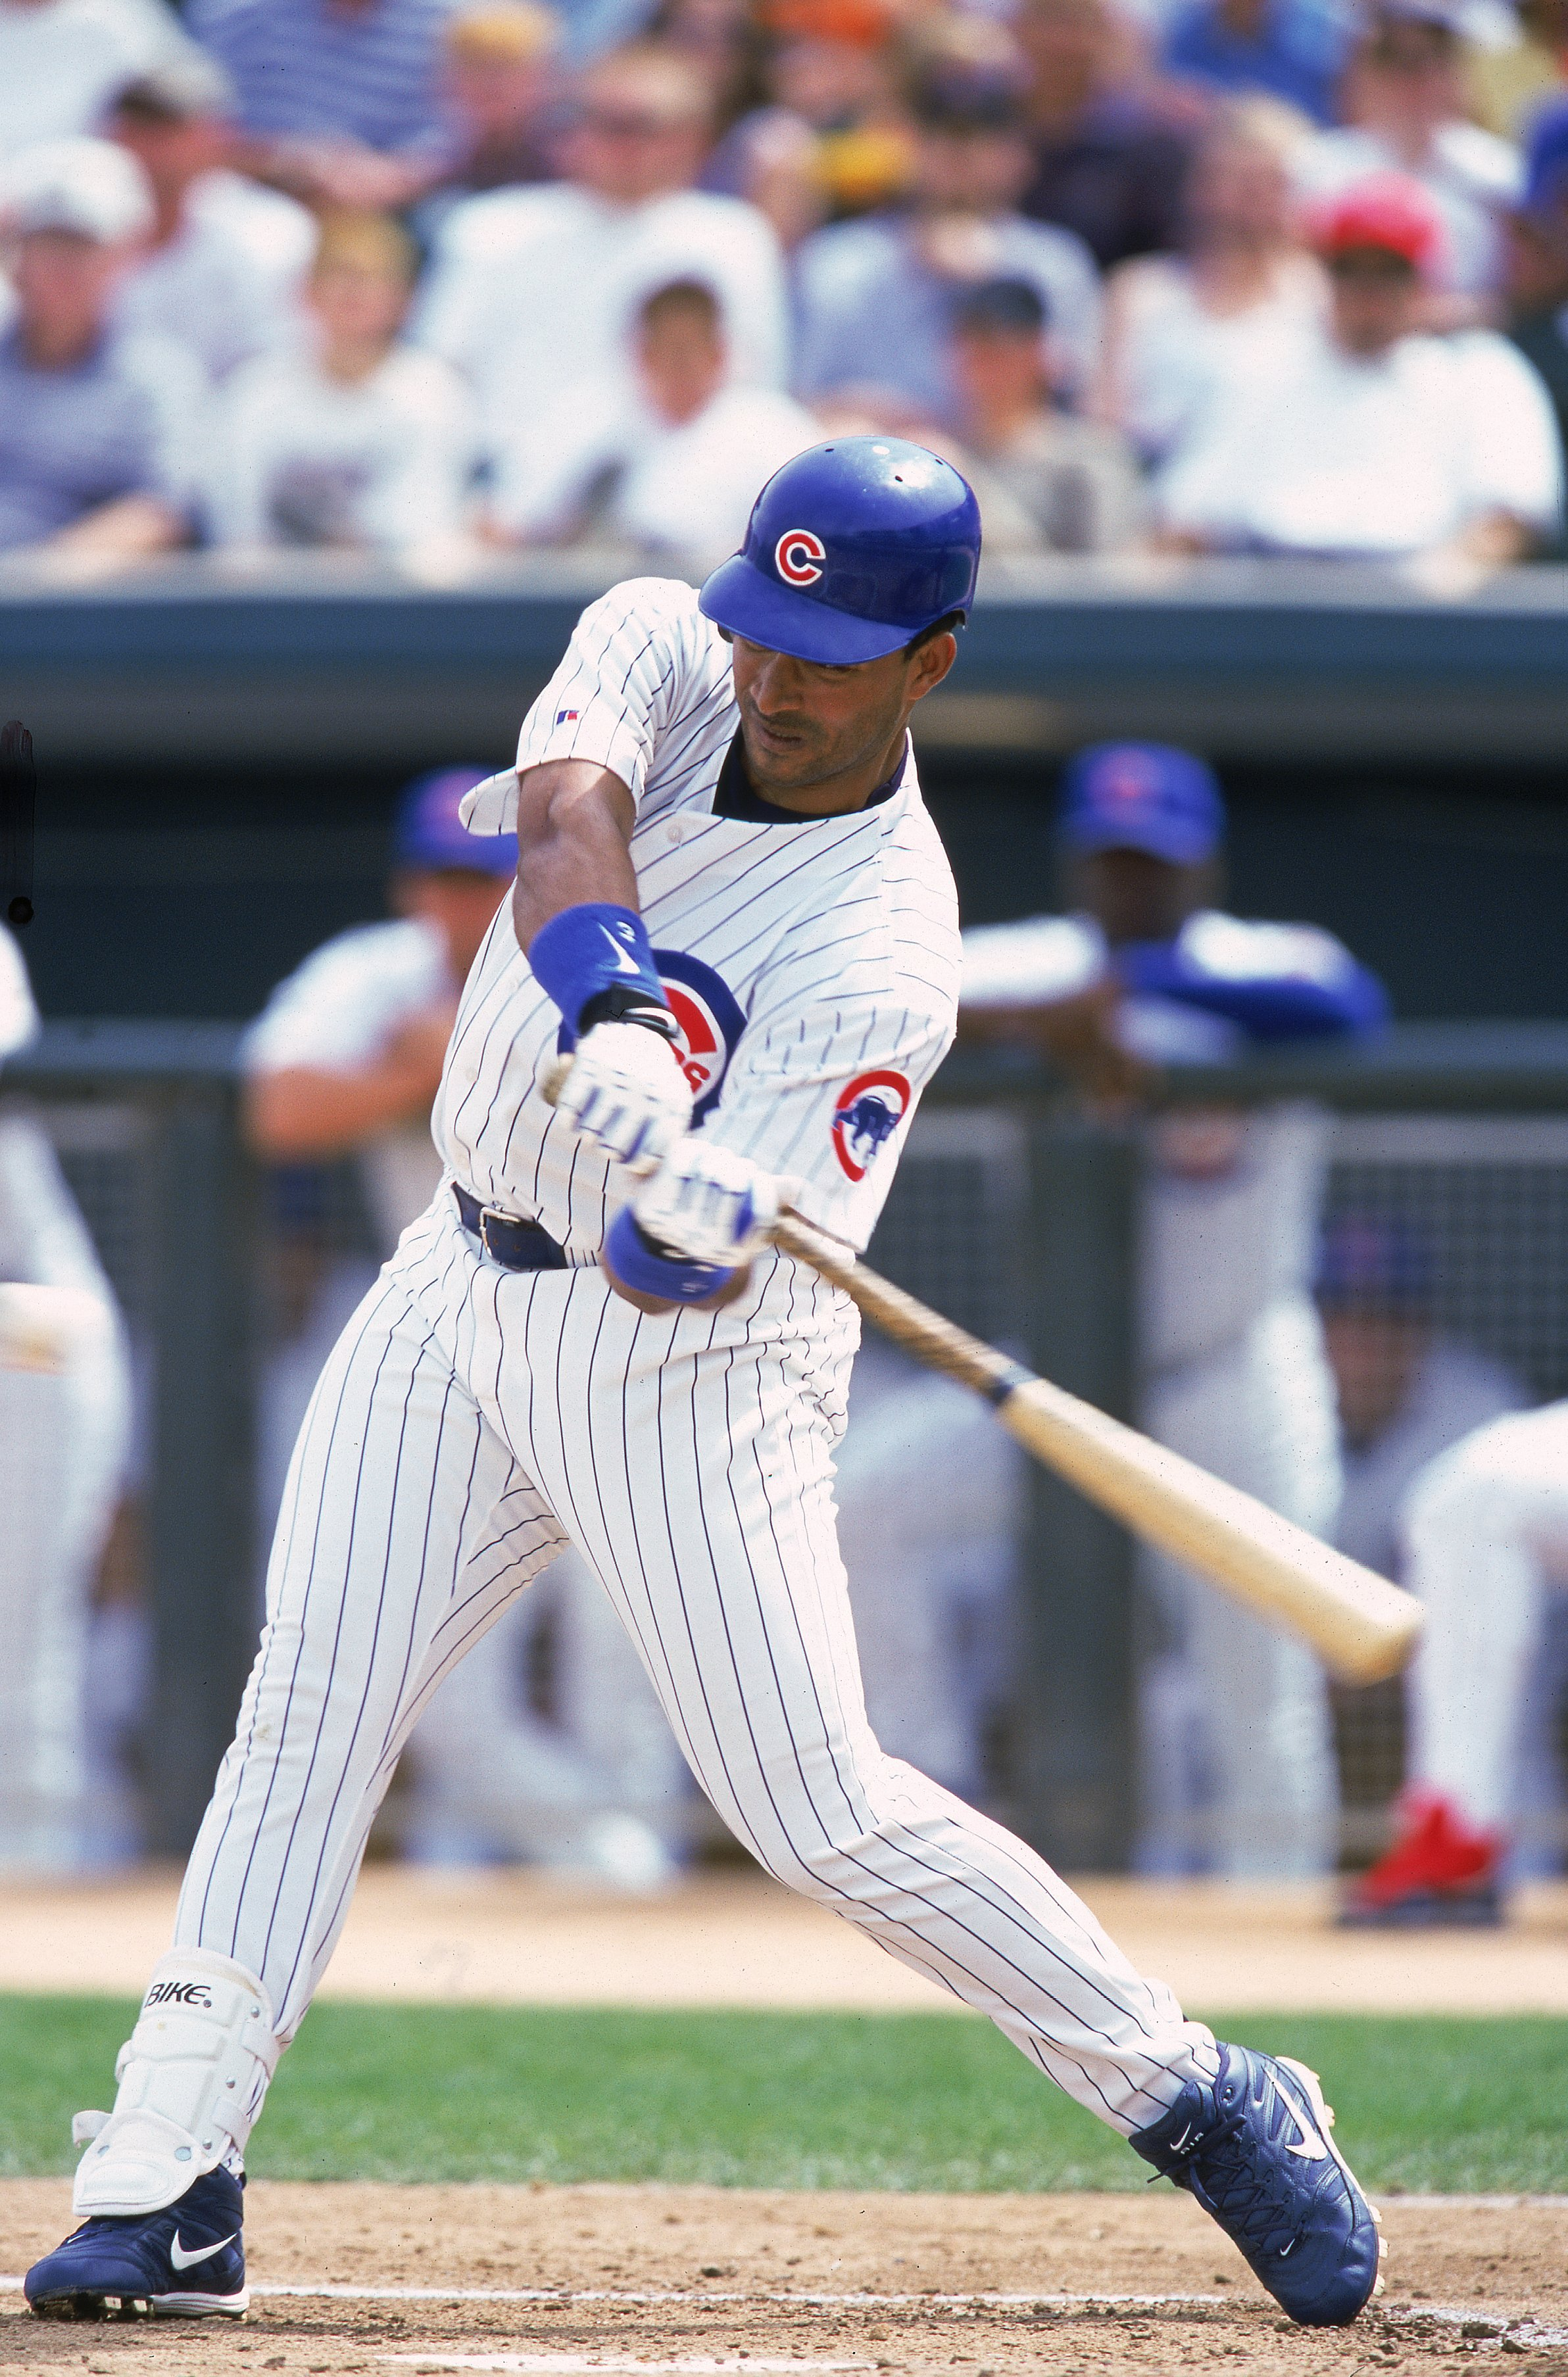 15 Mar 2000:  Henry Rodriguez #40 of the Chicago Cubs swings at the ball during the Spring Training Game against the Milwaukee Brewers at the HoHoKam Stadium in Mesa, Arizona. The Cubs defeated the Brewers 10-4. Mandatory Credit: Donald Miralle  /Allsport